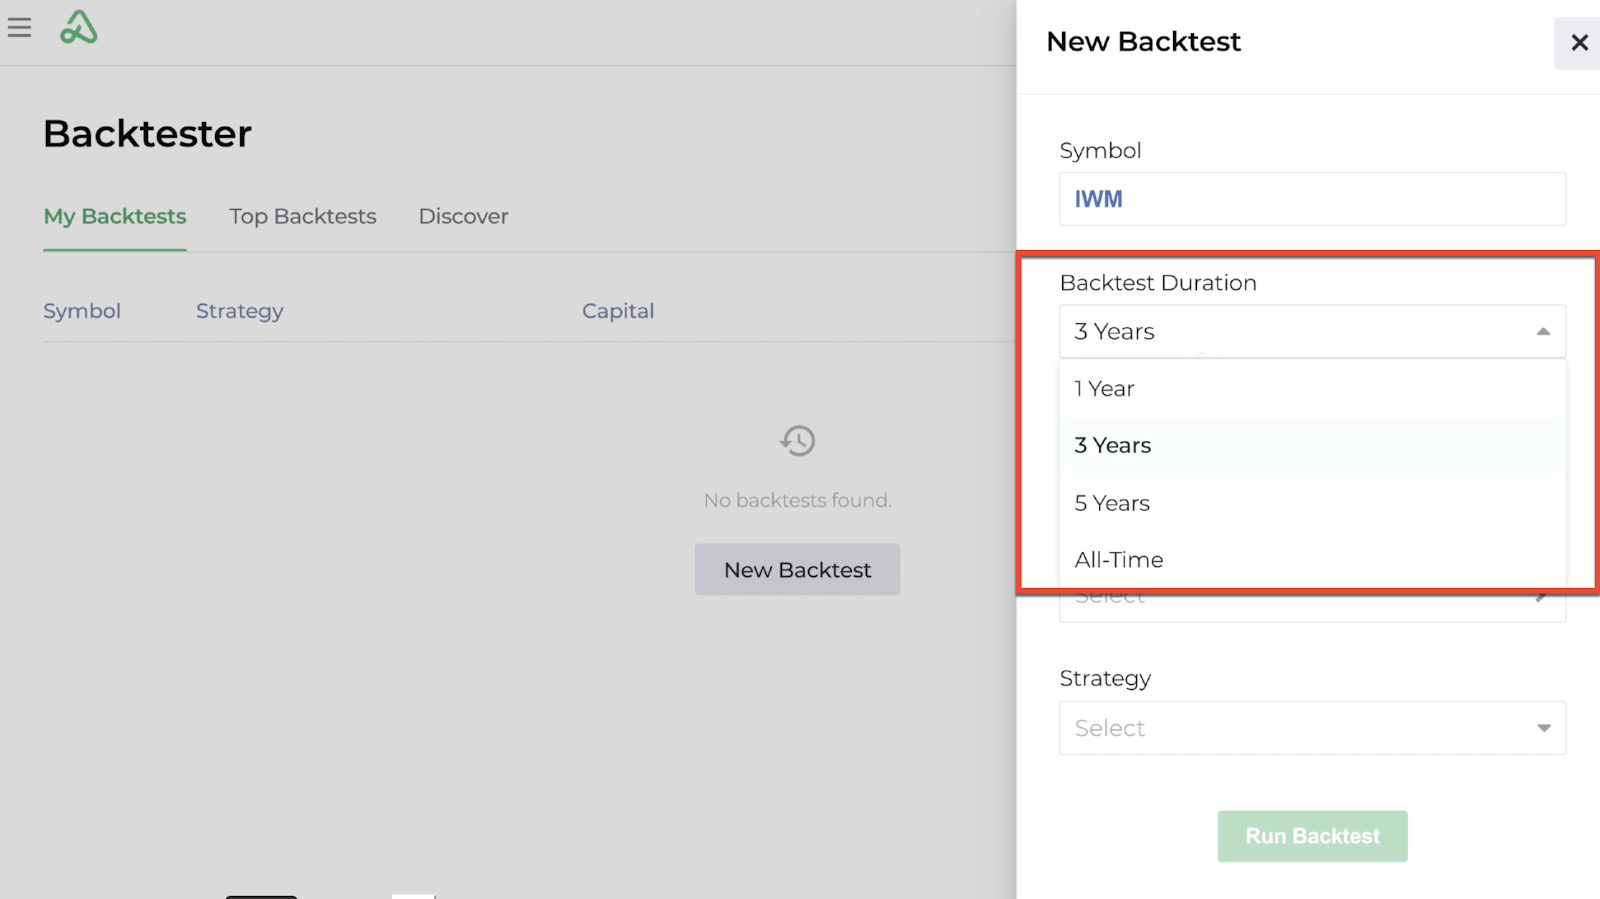 Screenshot highlighting the backtest duration options available for a new backtest